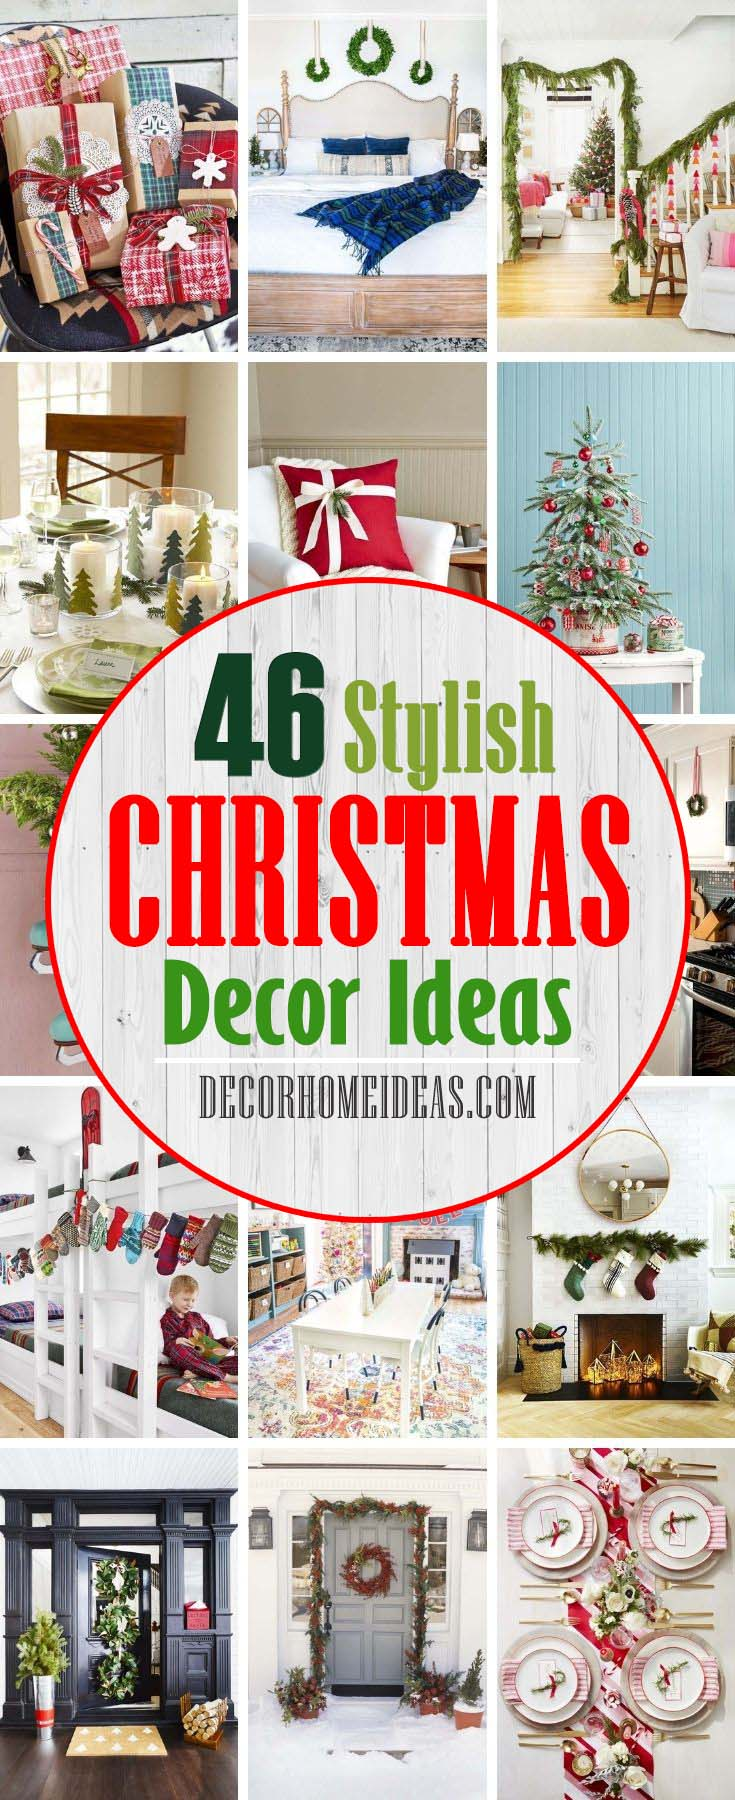 Best Stylish Christmas Decor Ideas. To help kick-start your inspiration, feast your eyes on these divine Christmas decorating ideas here. From pared-down wrapping paper to glitzy accessories to an innovative alternative to your favorite holiday staples, you'll find something to make your spirits merry and bright. #decorhomeideas